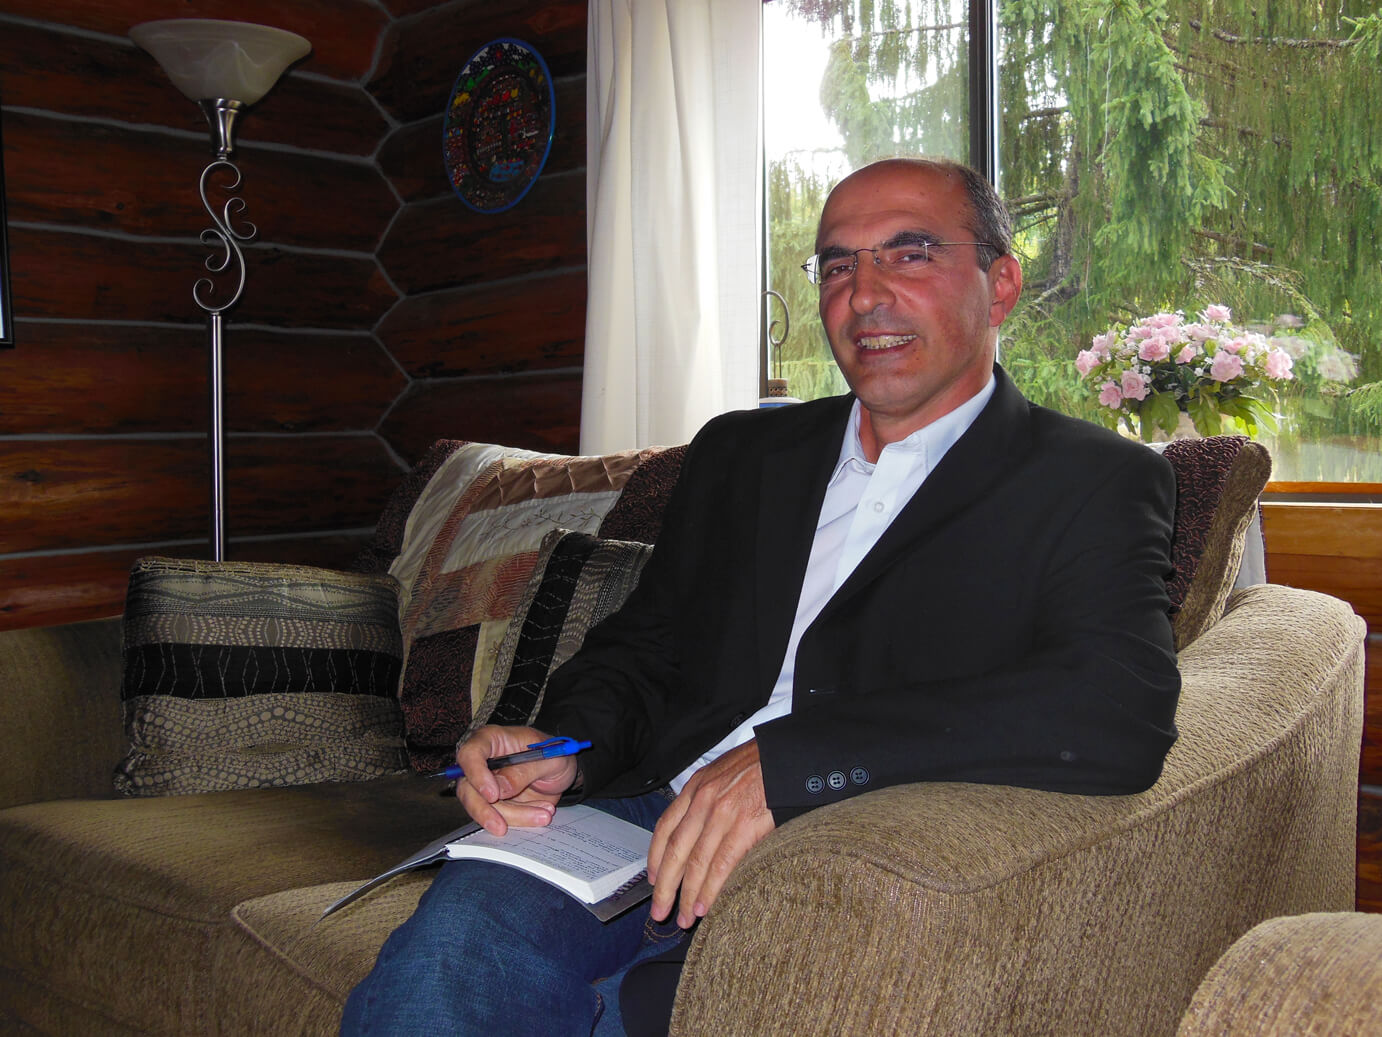 reza-on-couch